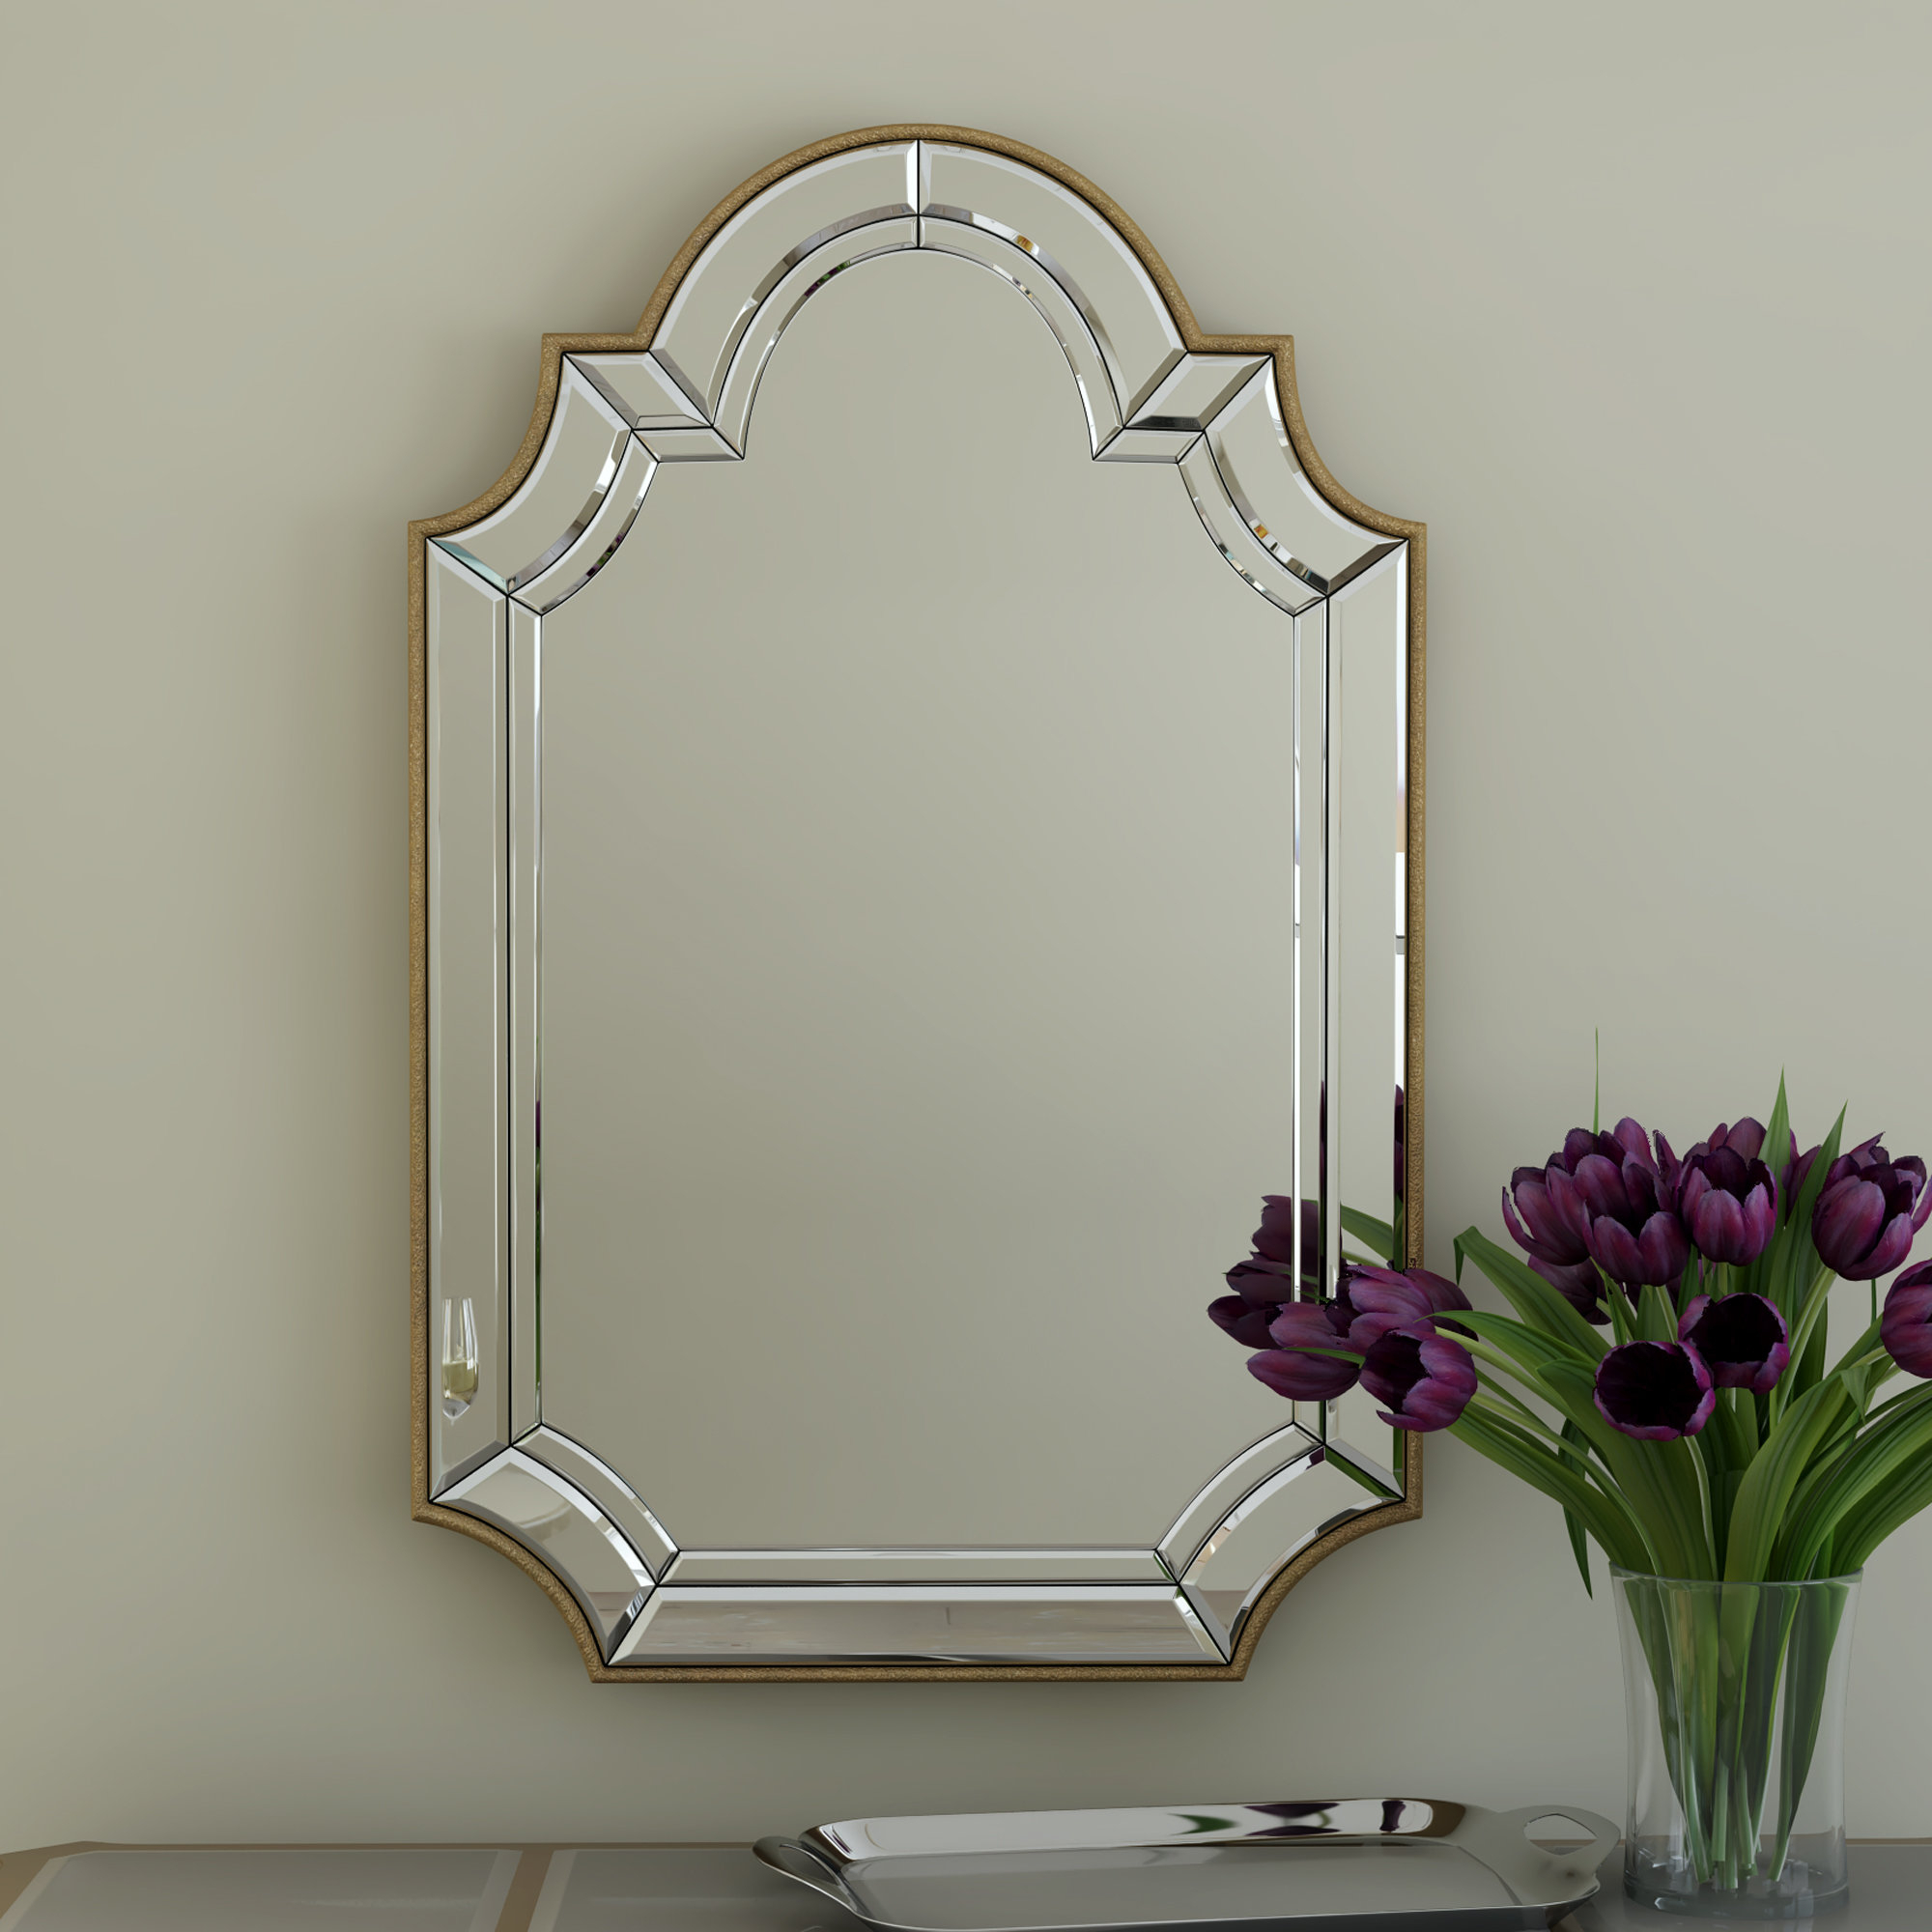 Trendy Ekaterina Arch/crowned Top Wall Mirrors In Arch/crowned Top Champagne Wall Mirror (Gallery 5 of 20)